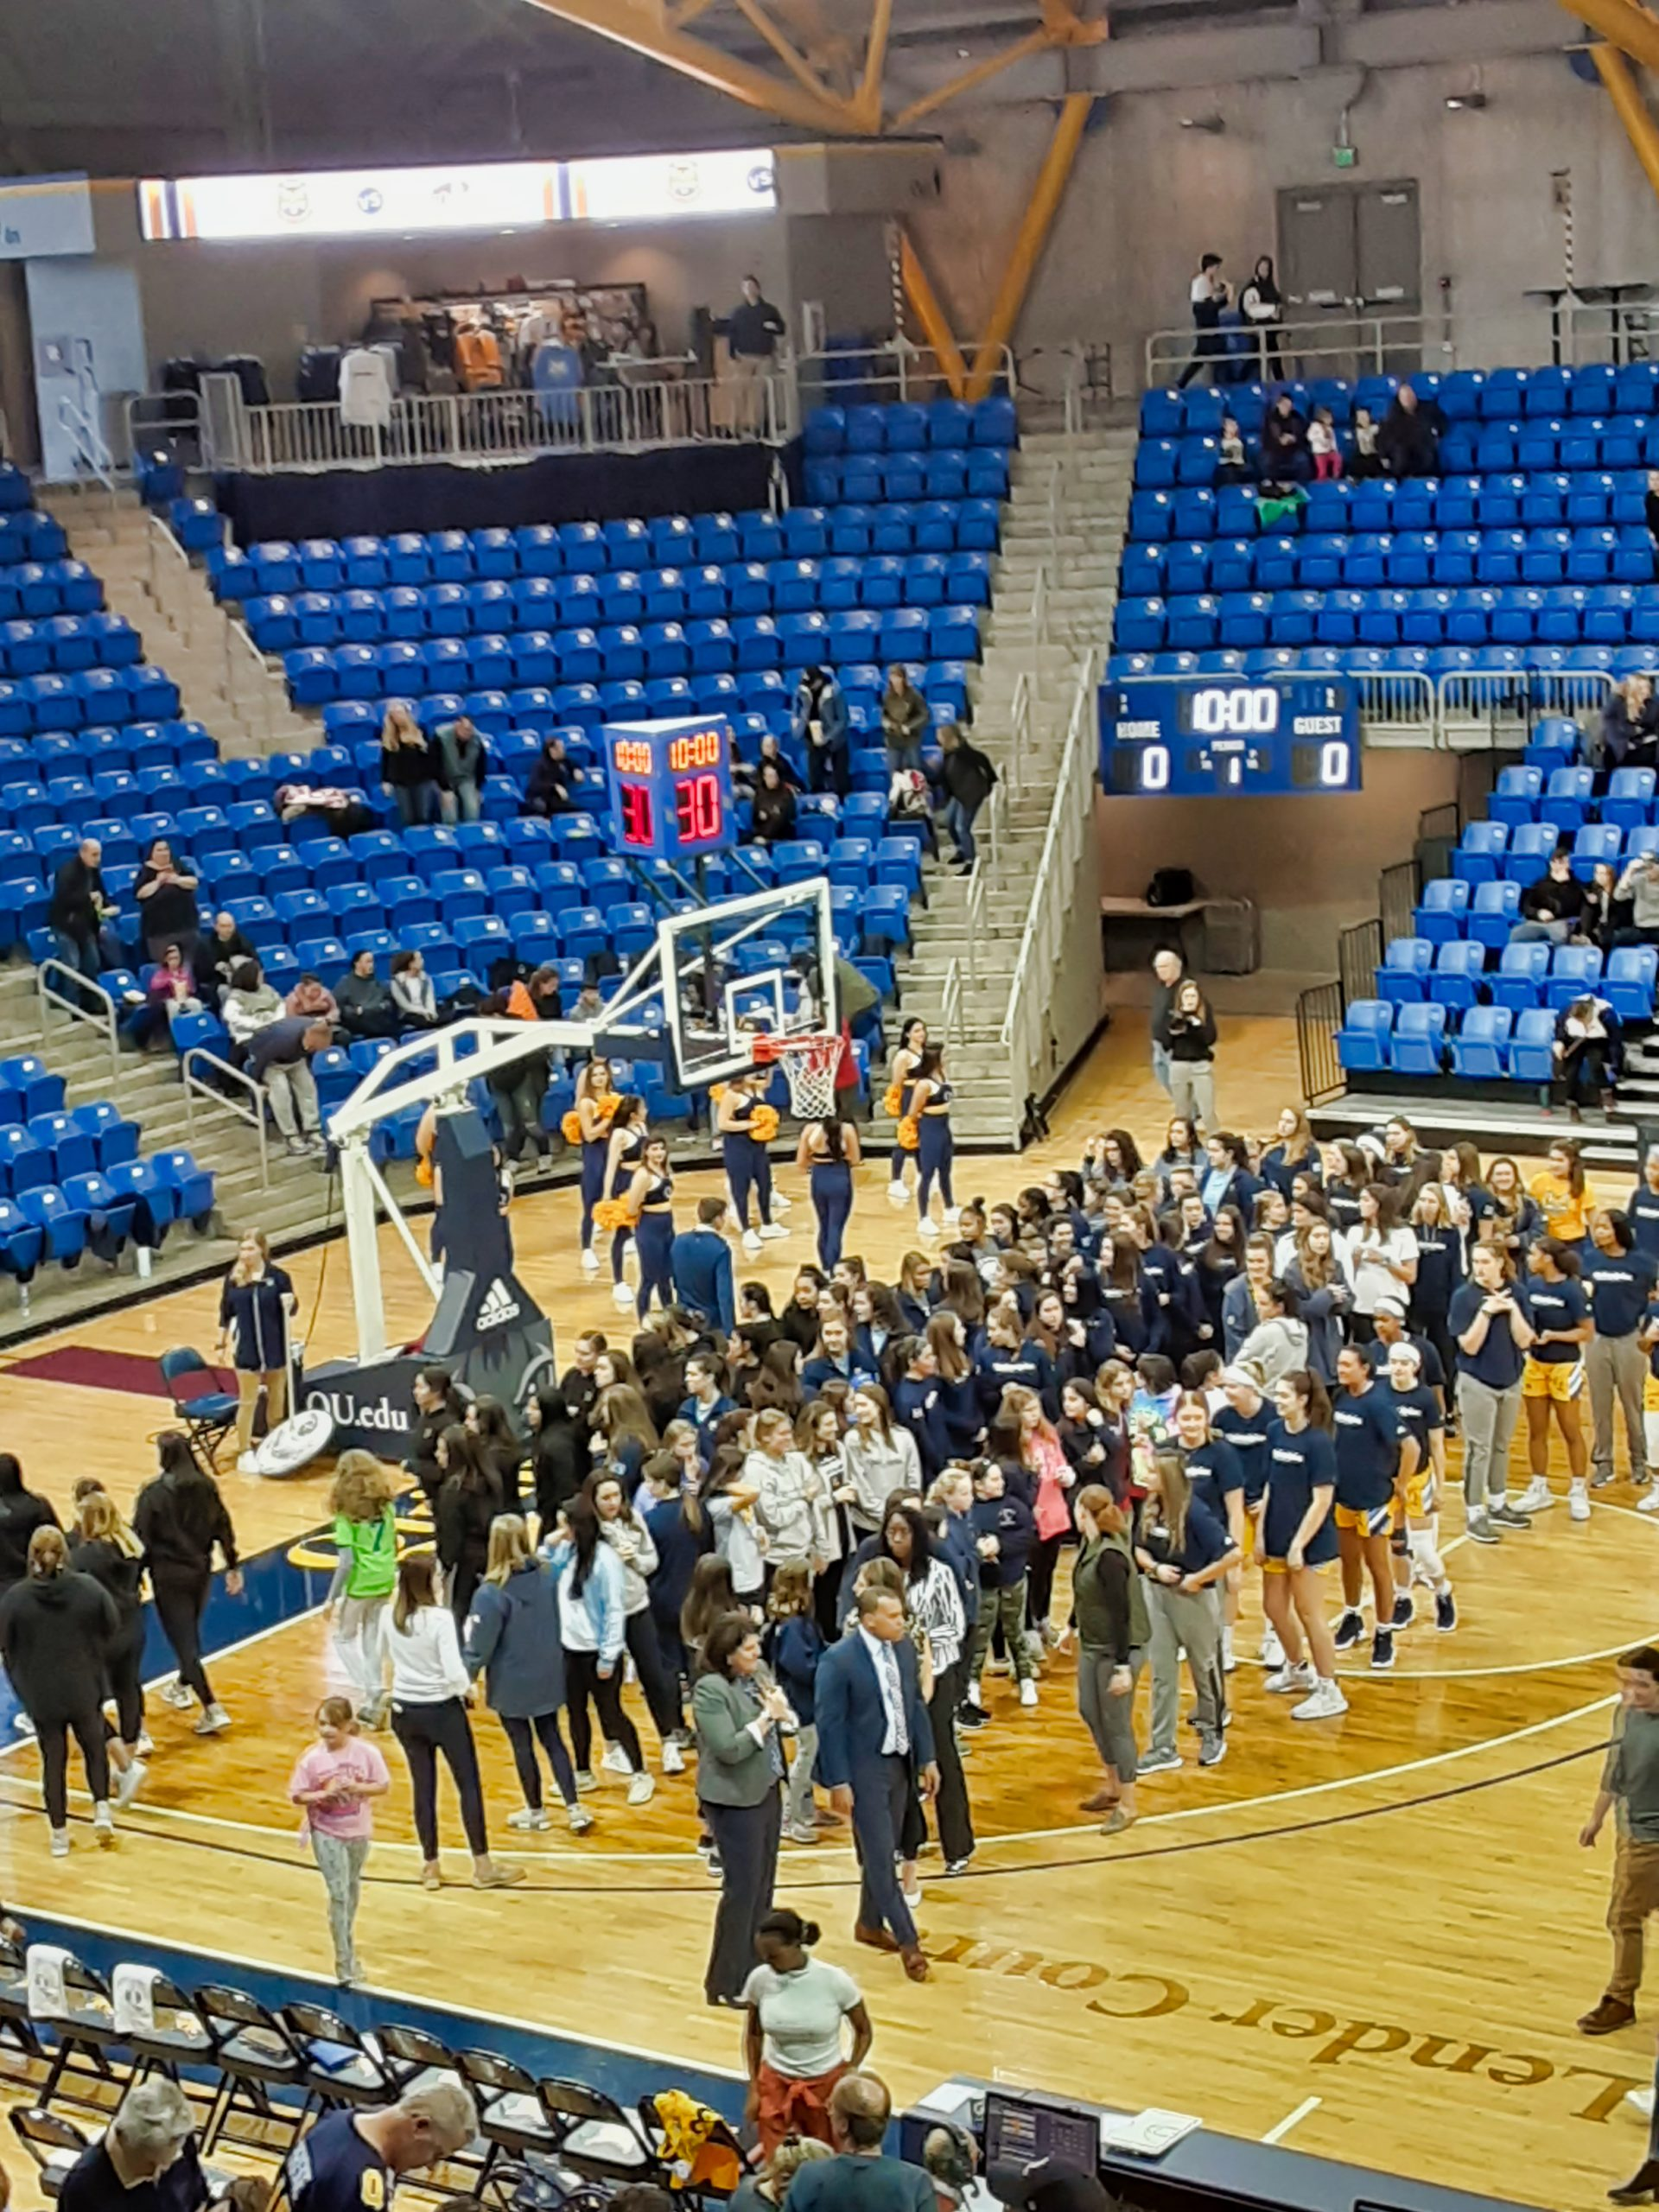 Lady hoopsters recognized by Quinnipiac